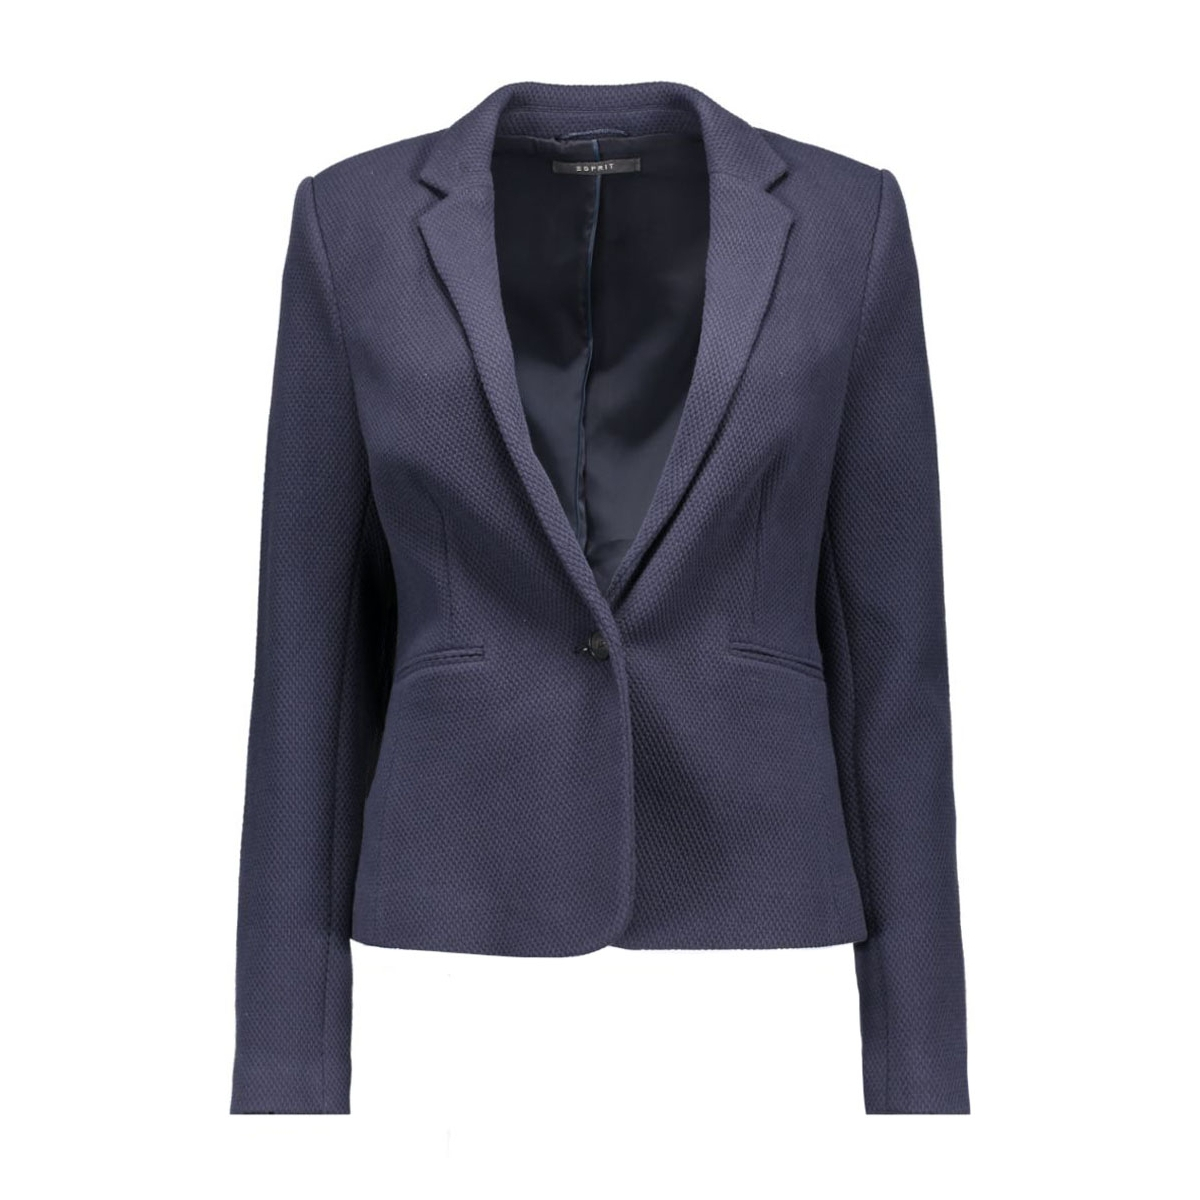 086eo1g030 esprit collection blazer e400